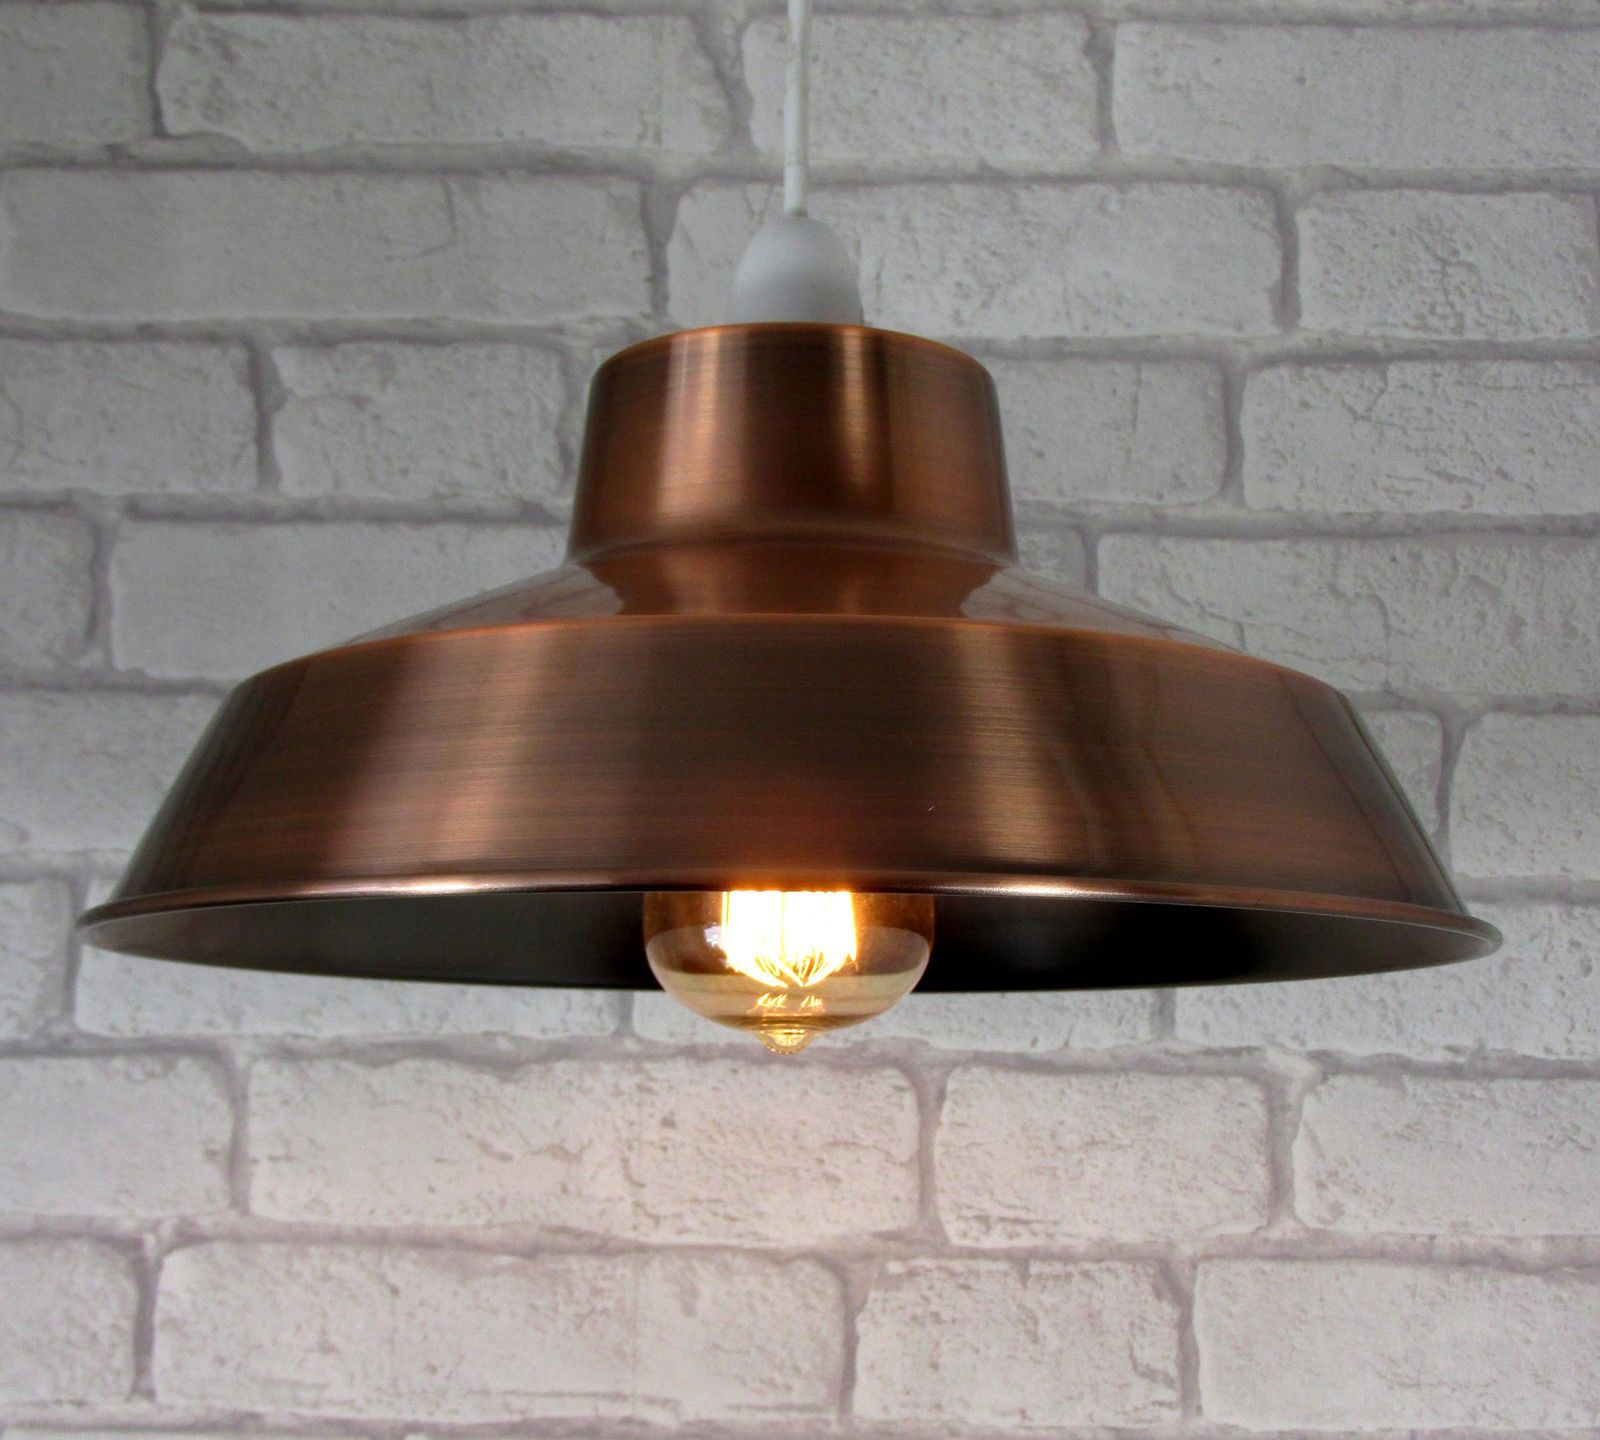 Details About Vintage Metal Lampshade Ceiling Light Shade